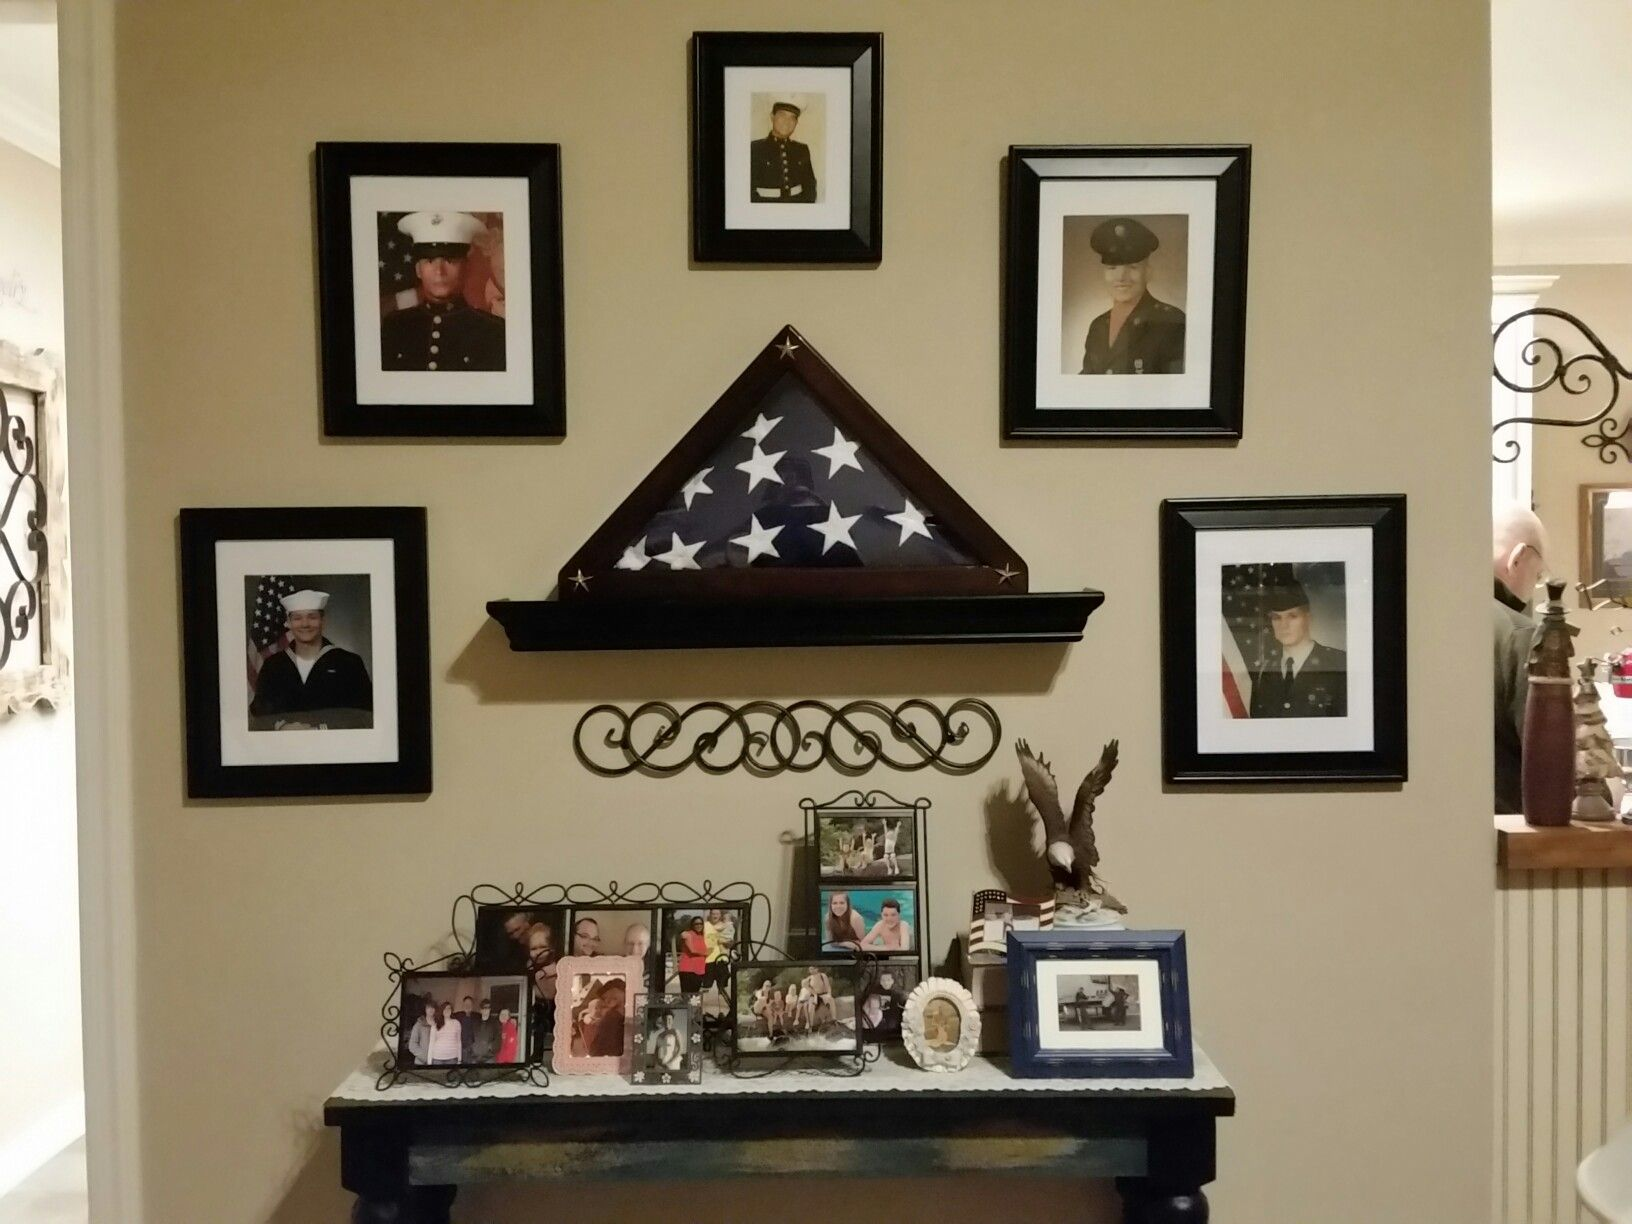 Family military heritage wall | My completed projects in ... on mid century modern wall design, inspirational wall design, curtain wall design, handmade wall design, decorating idea wall design, exterior home wall design, rustic log cabin wall design, quilting wall design, modern interior wall design,